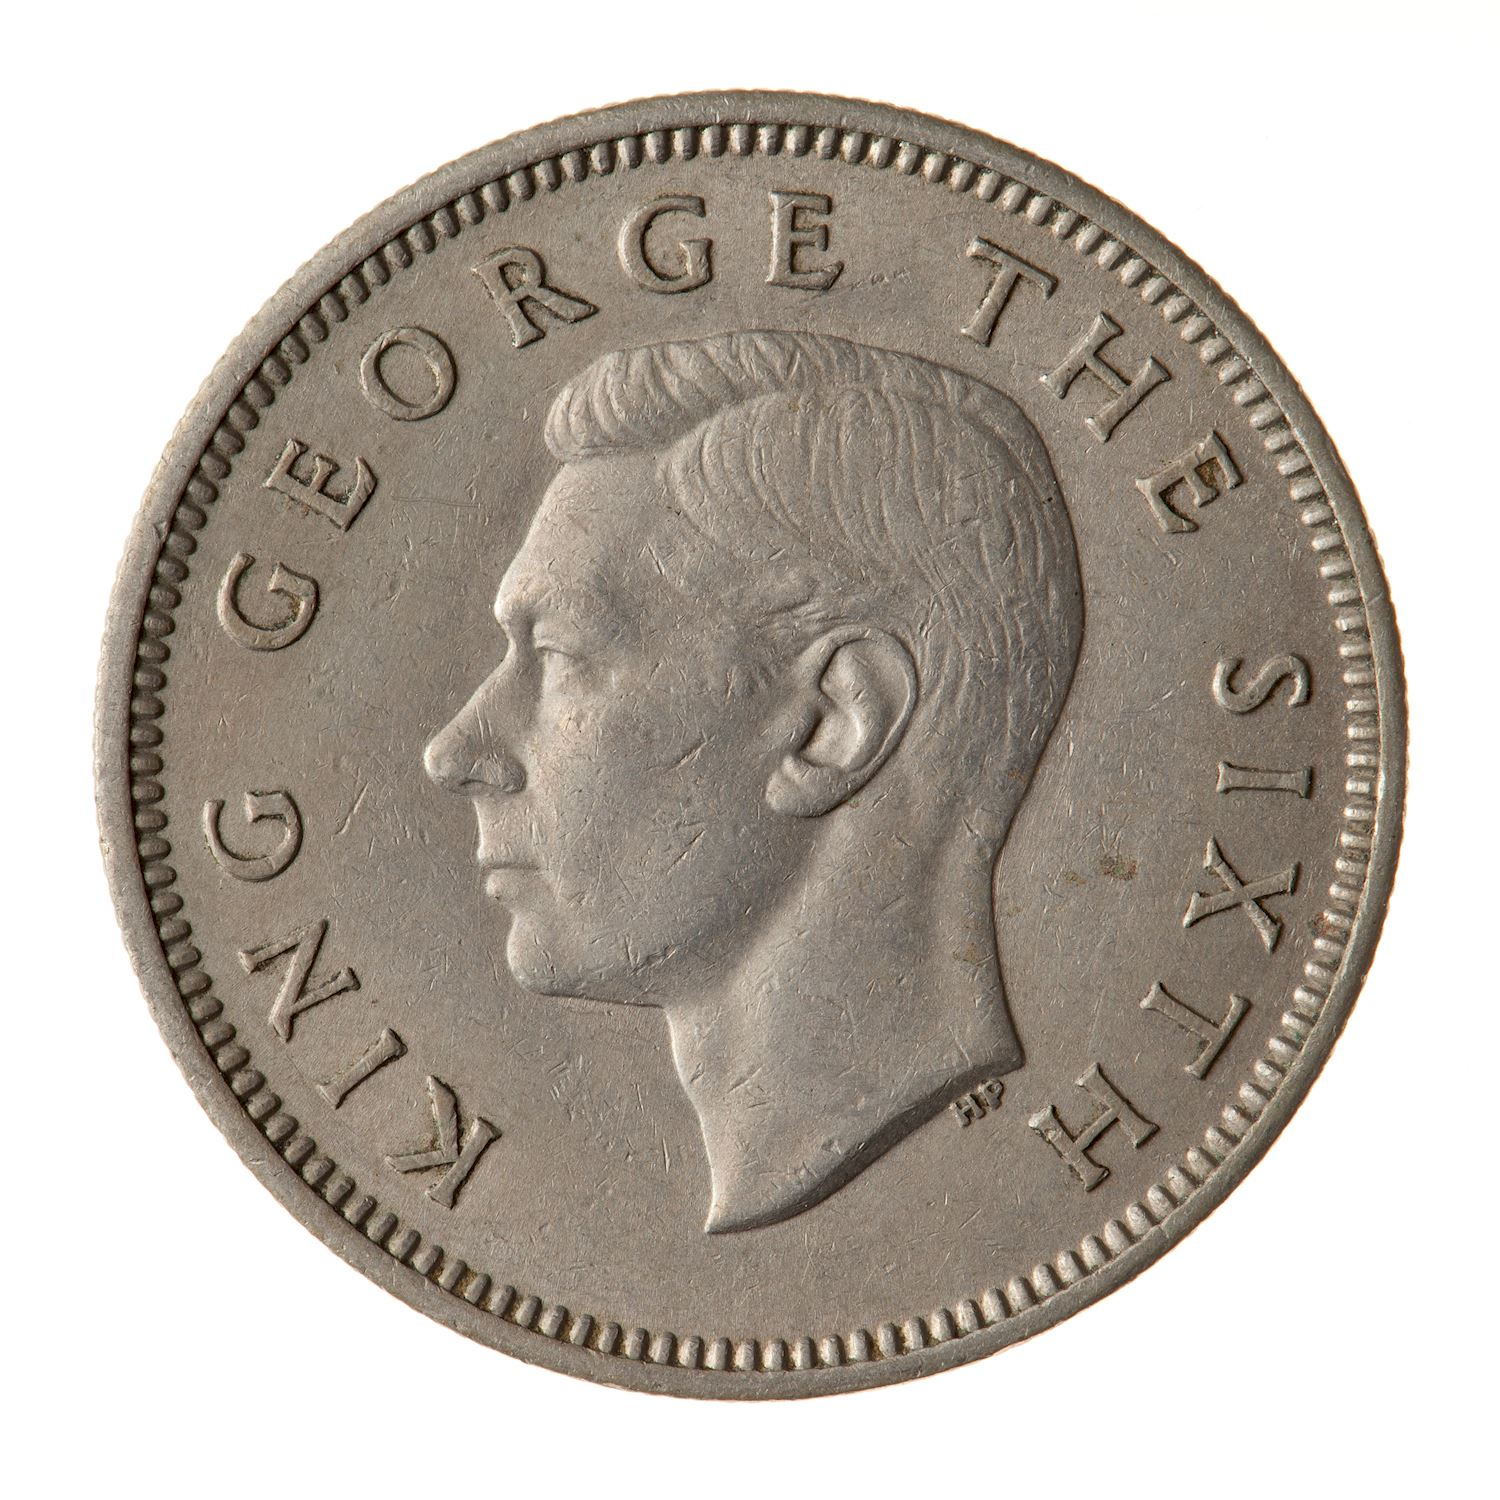 Shilling: Photo Coin - 1 Shilling, New Zealand, 1948